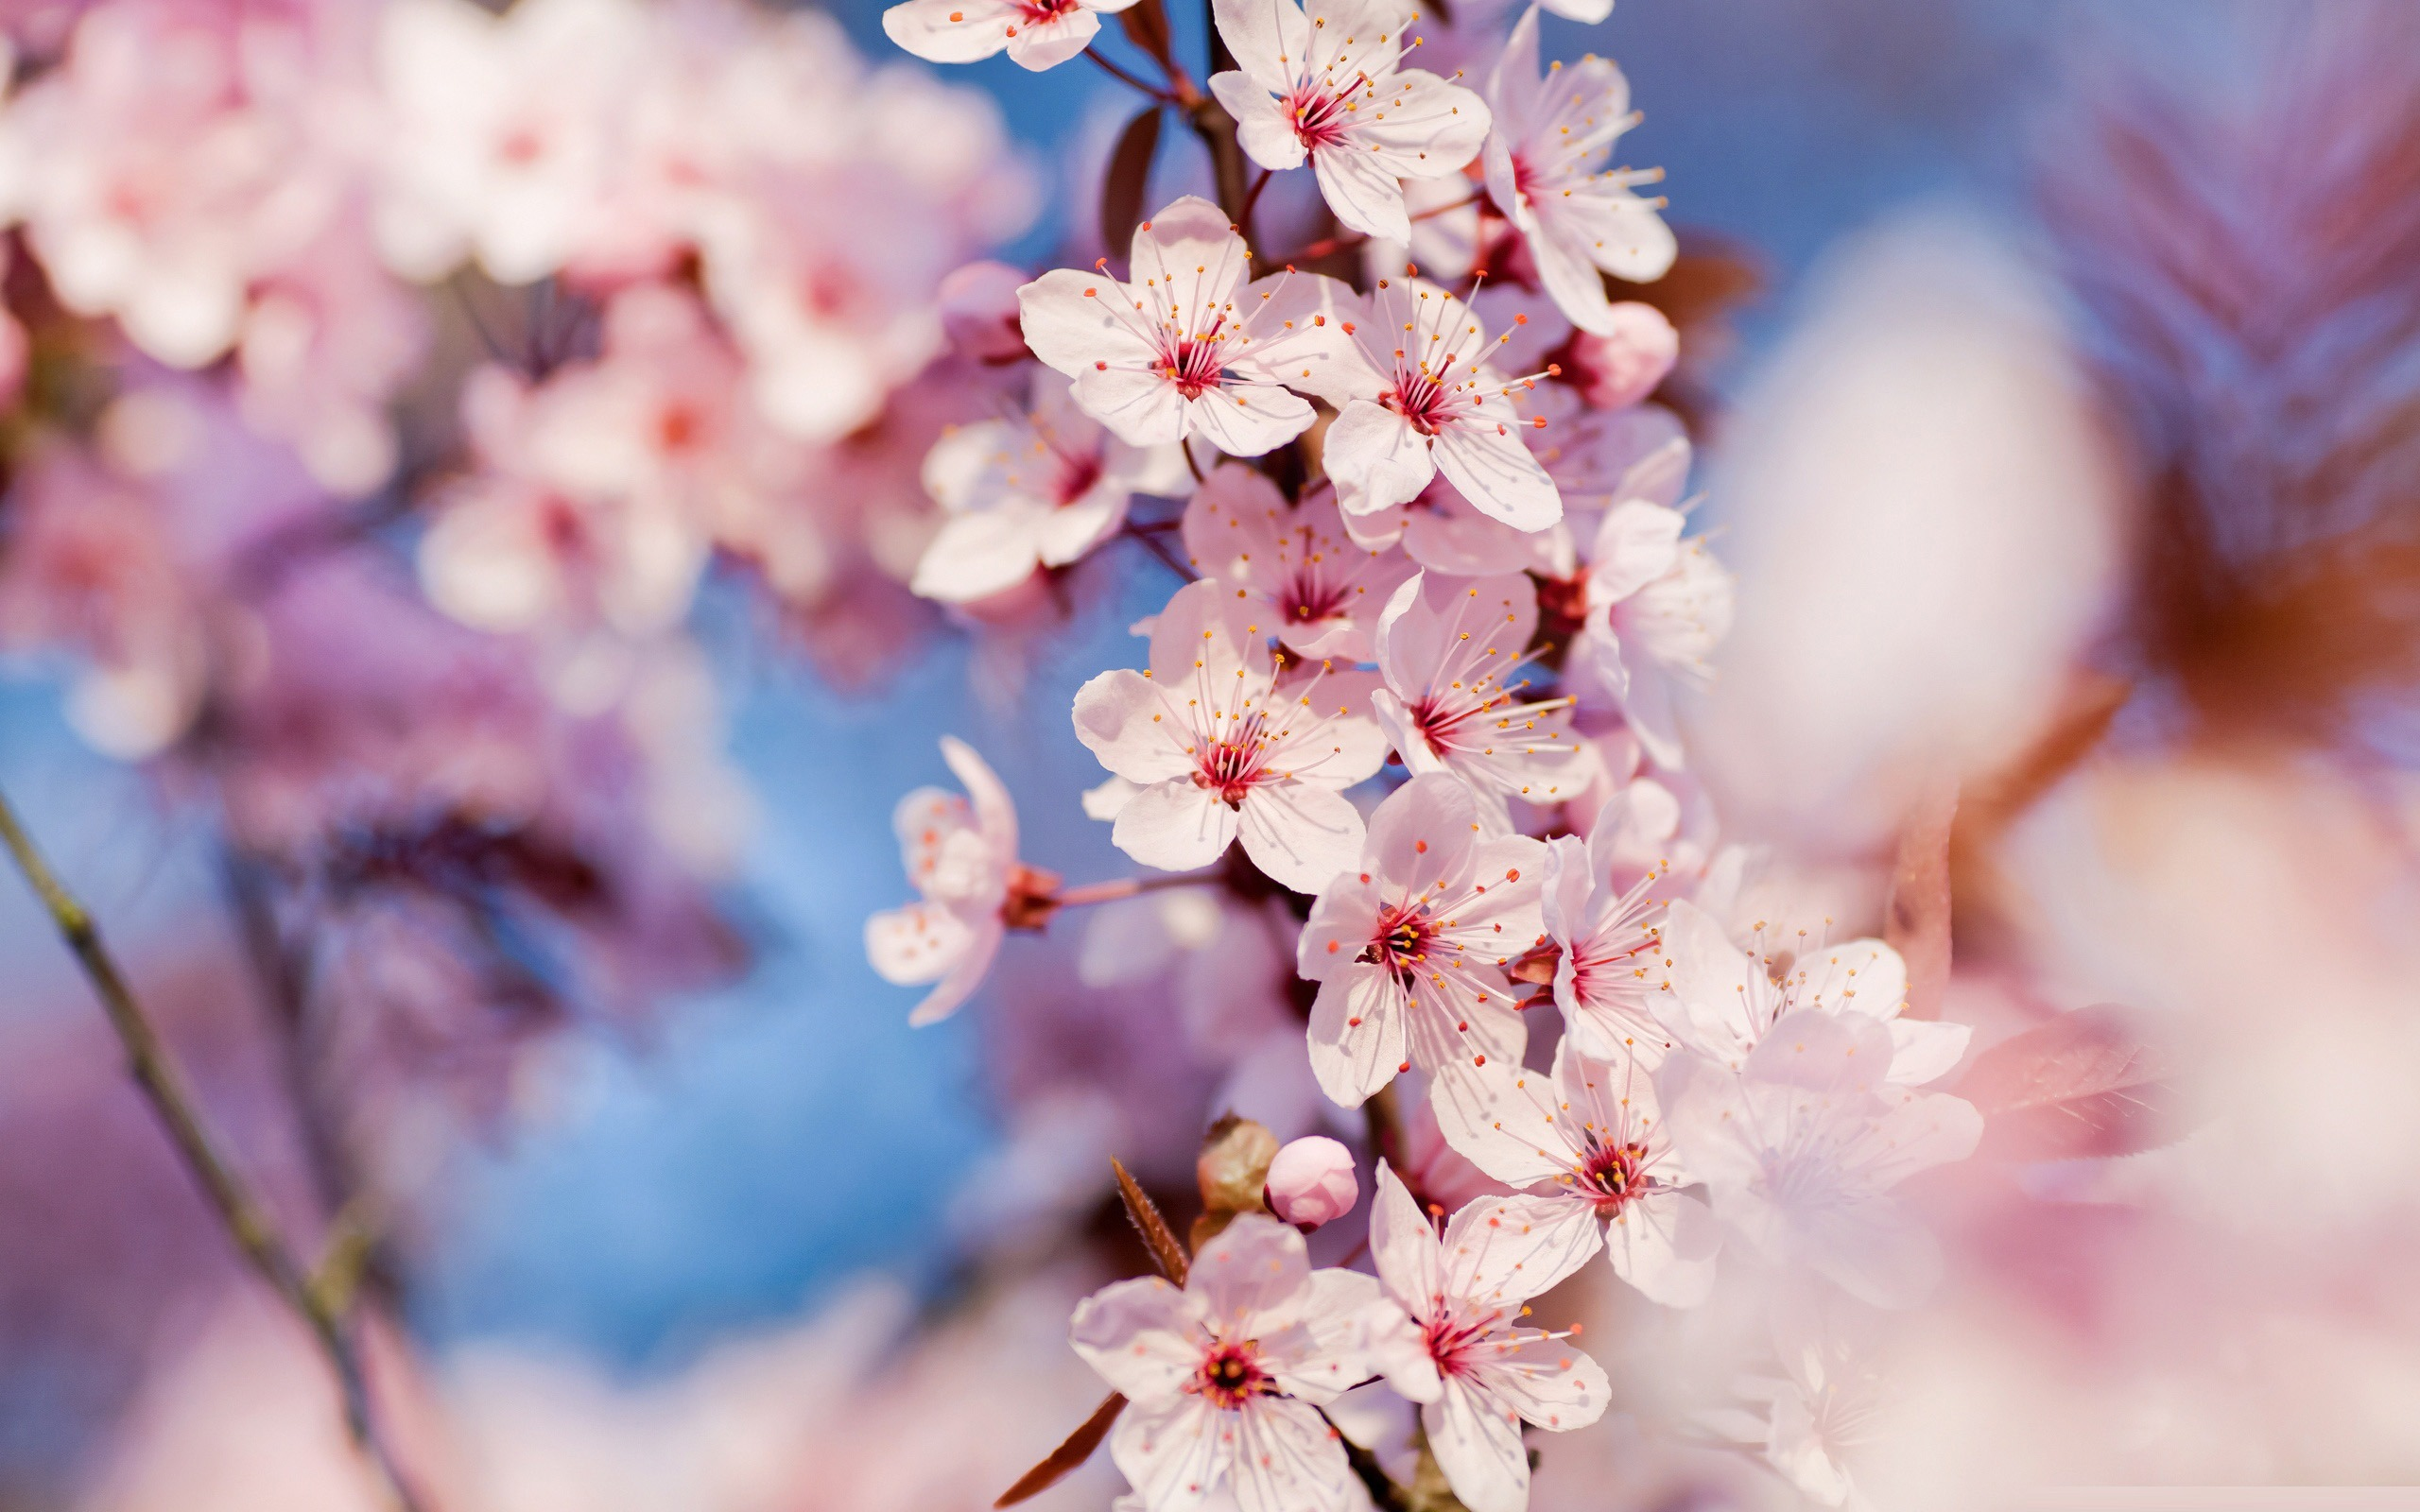 Cherry Blossom Spring Album Hq Wallpapers for Pc 2560x1600px